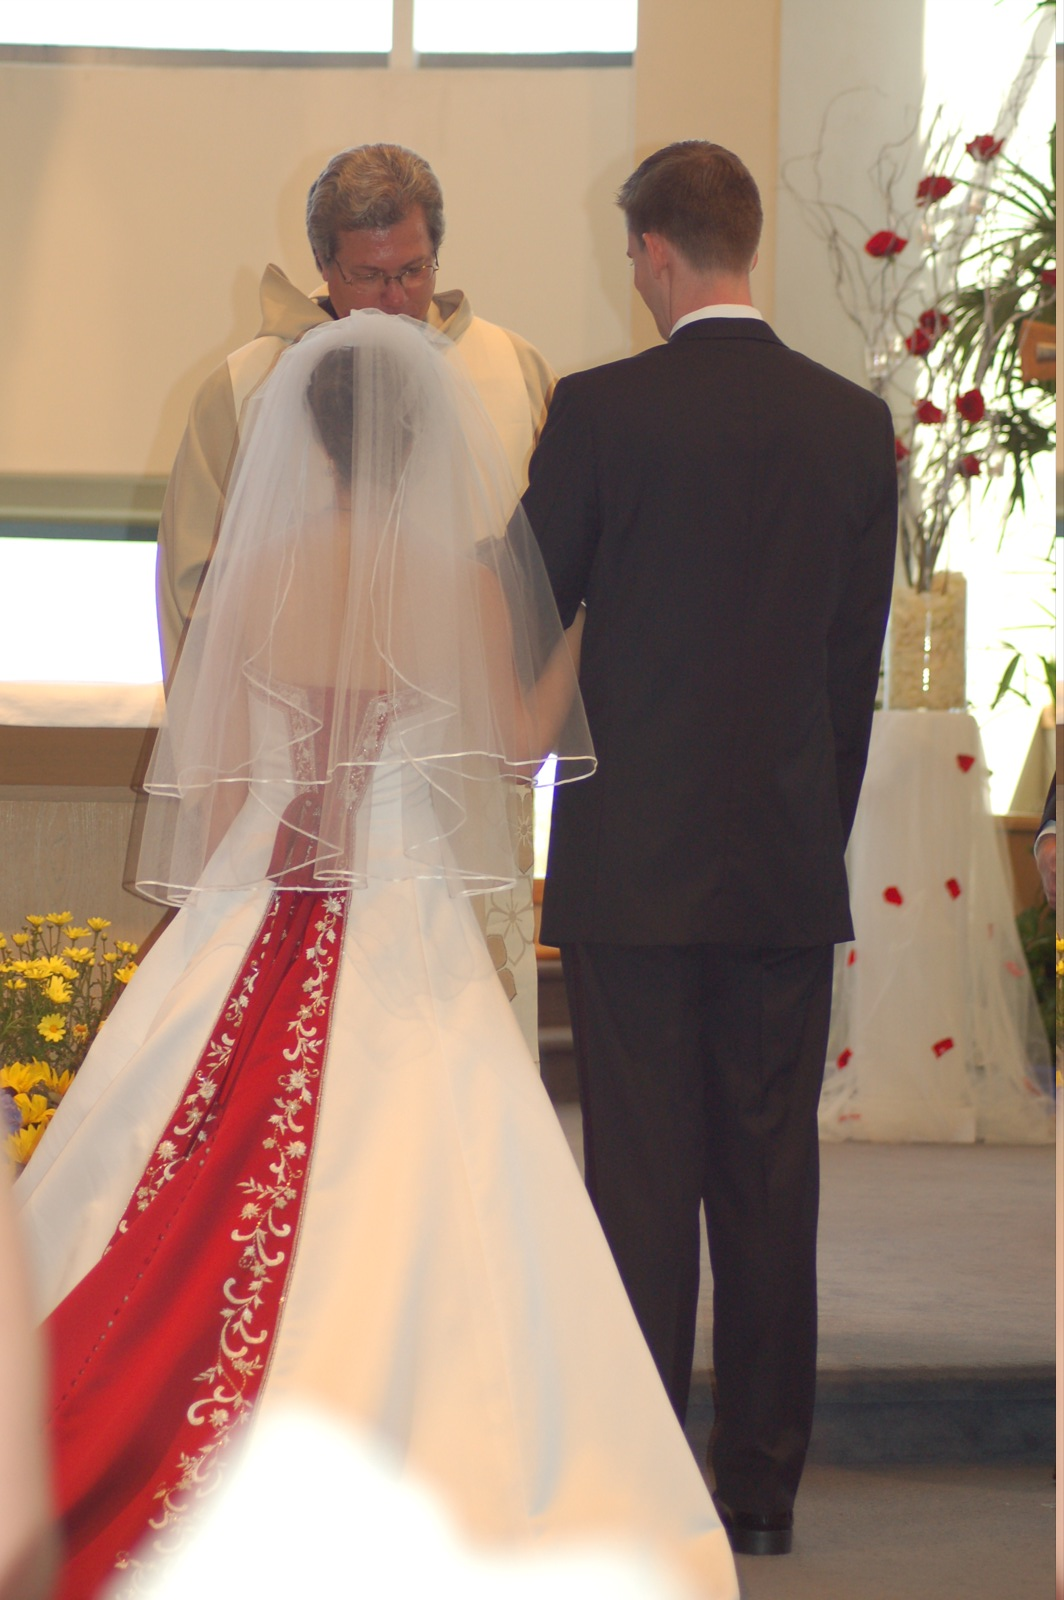 File:White and red wedding dress.jpg